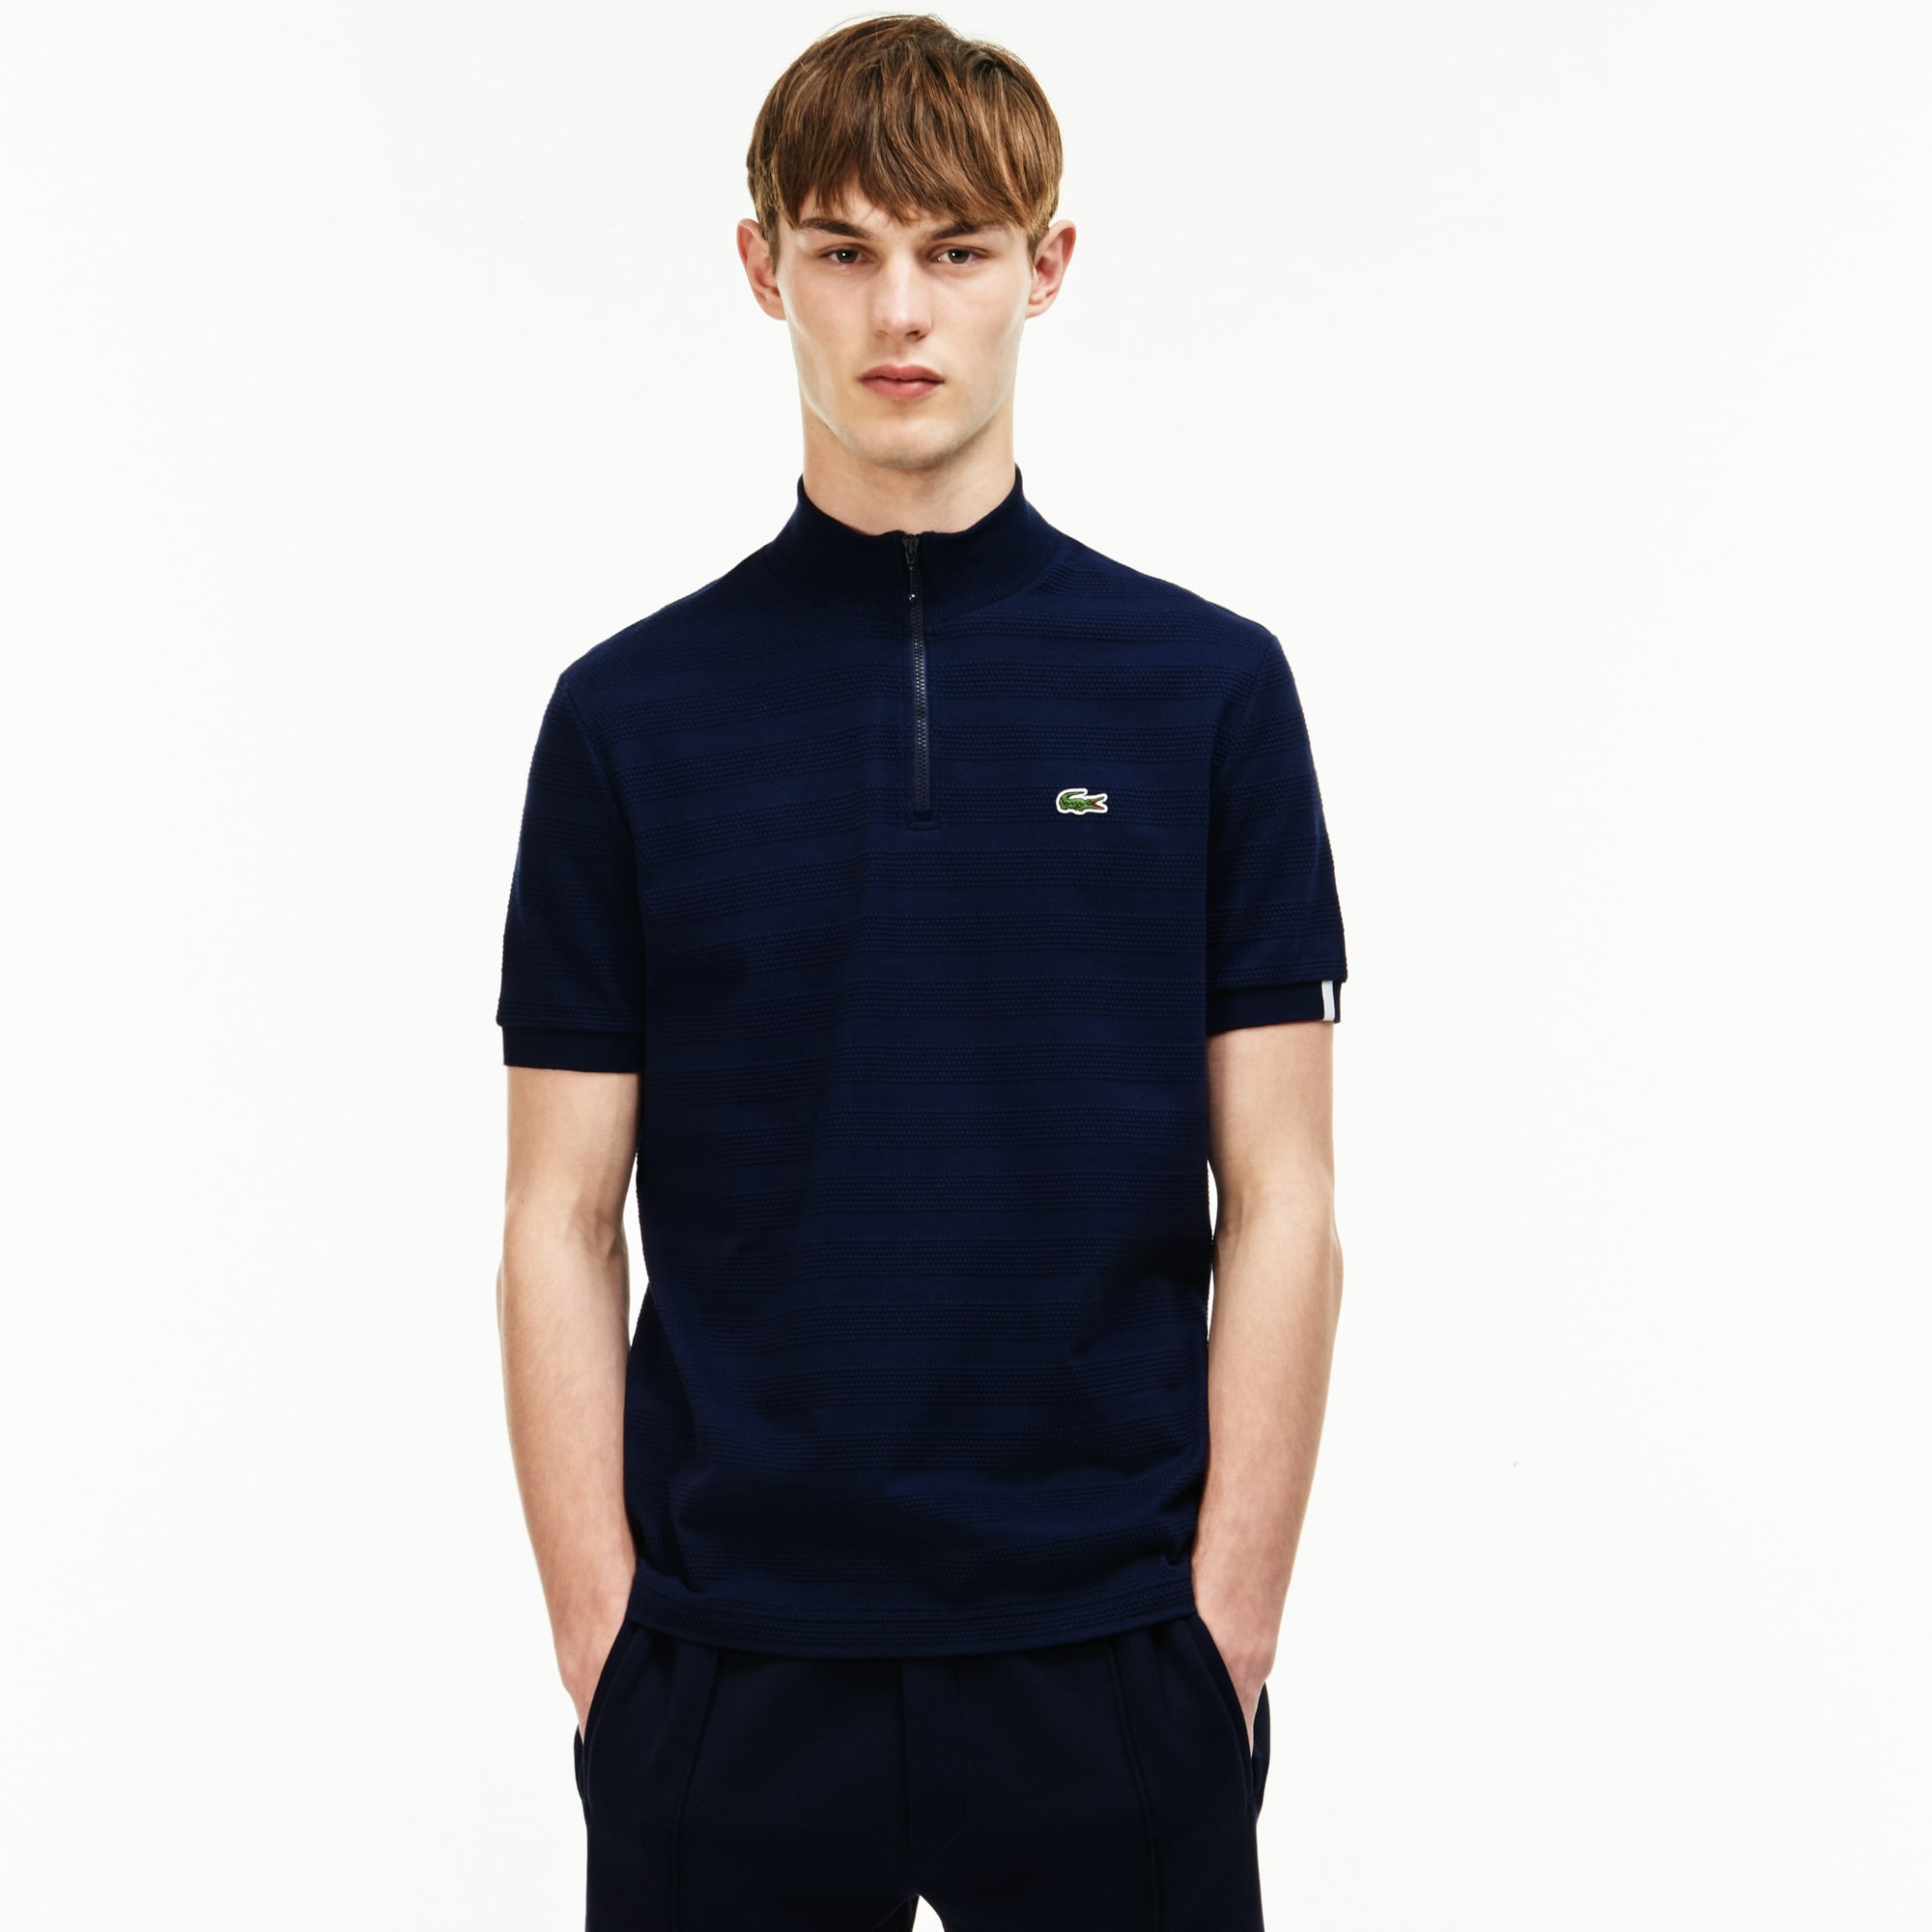 Men's  LIVE Slim Fit Zip Striped Honeycomb Jersey Polo